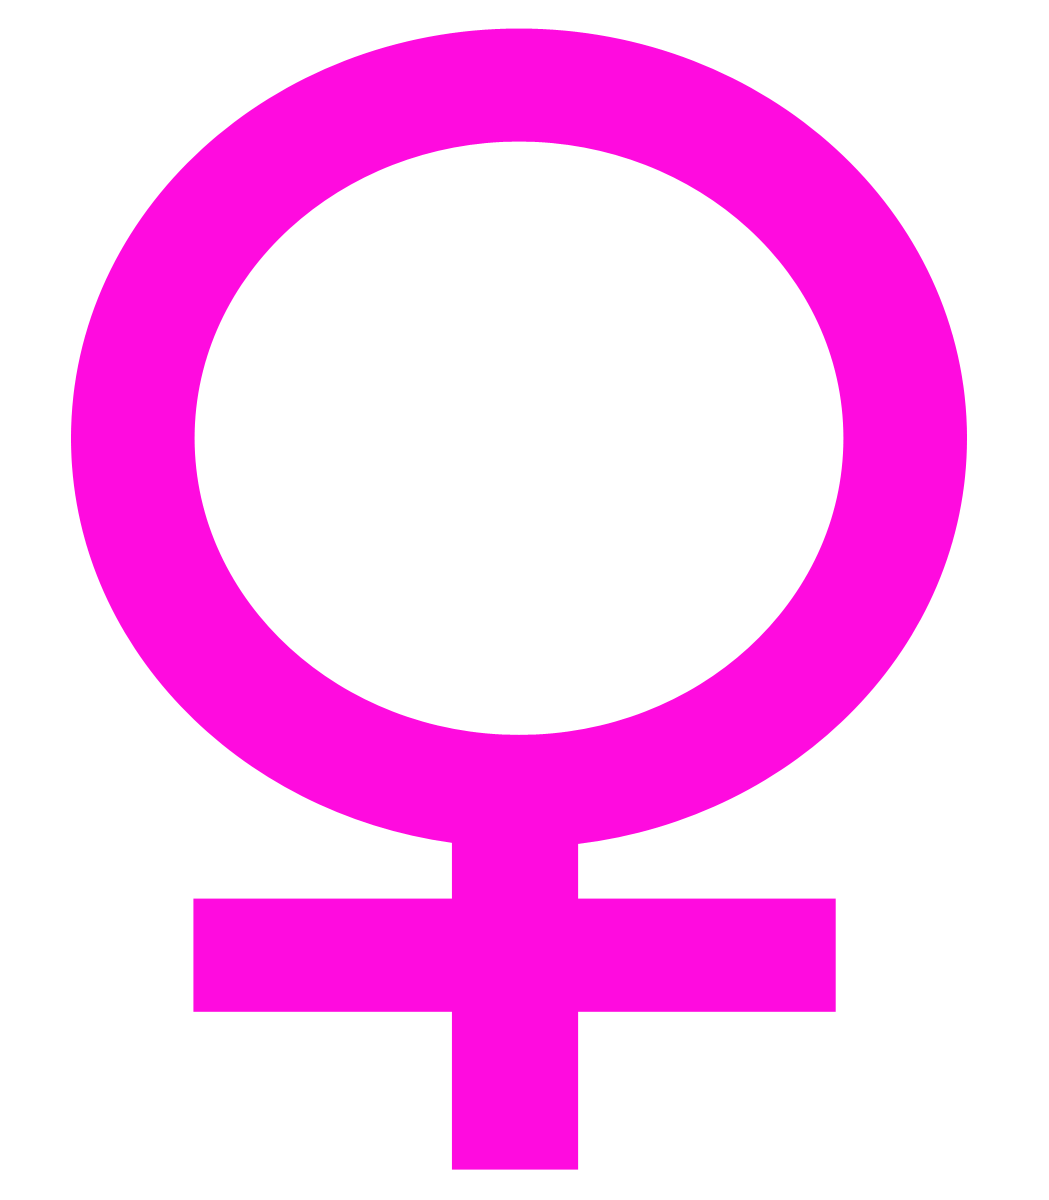 Woman symbol pink background. Hand clipart feminine